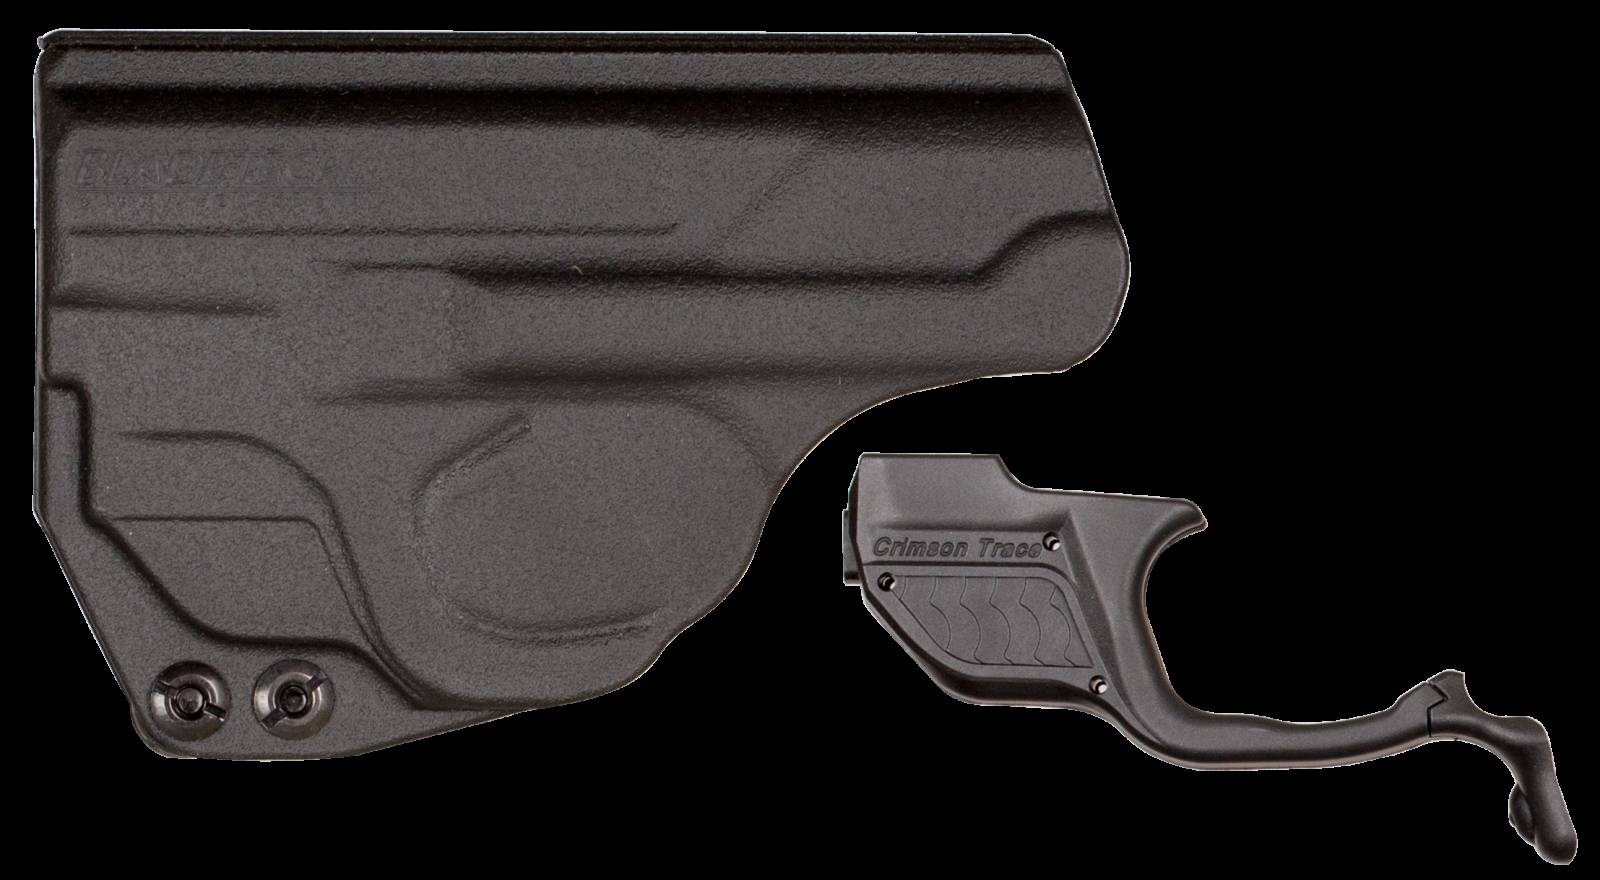 Crimson Trace Laserguard Green Laser S&W M&P Shield 9/40 Trigger Guard Blk Polymer with Holster